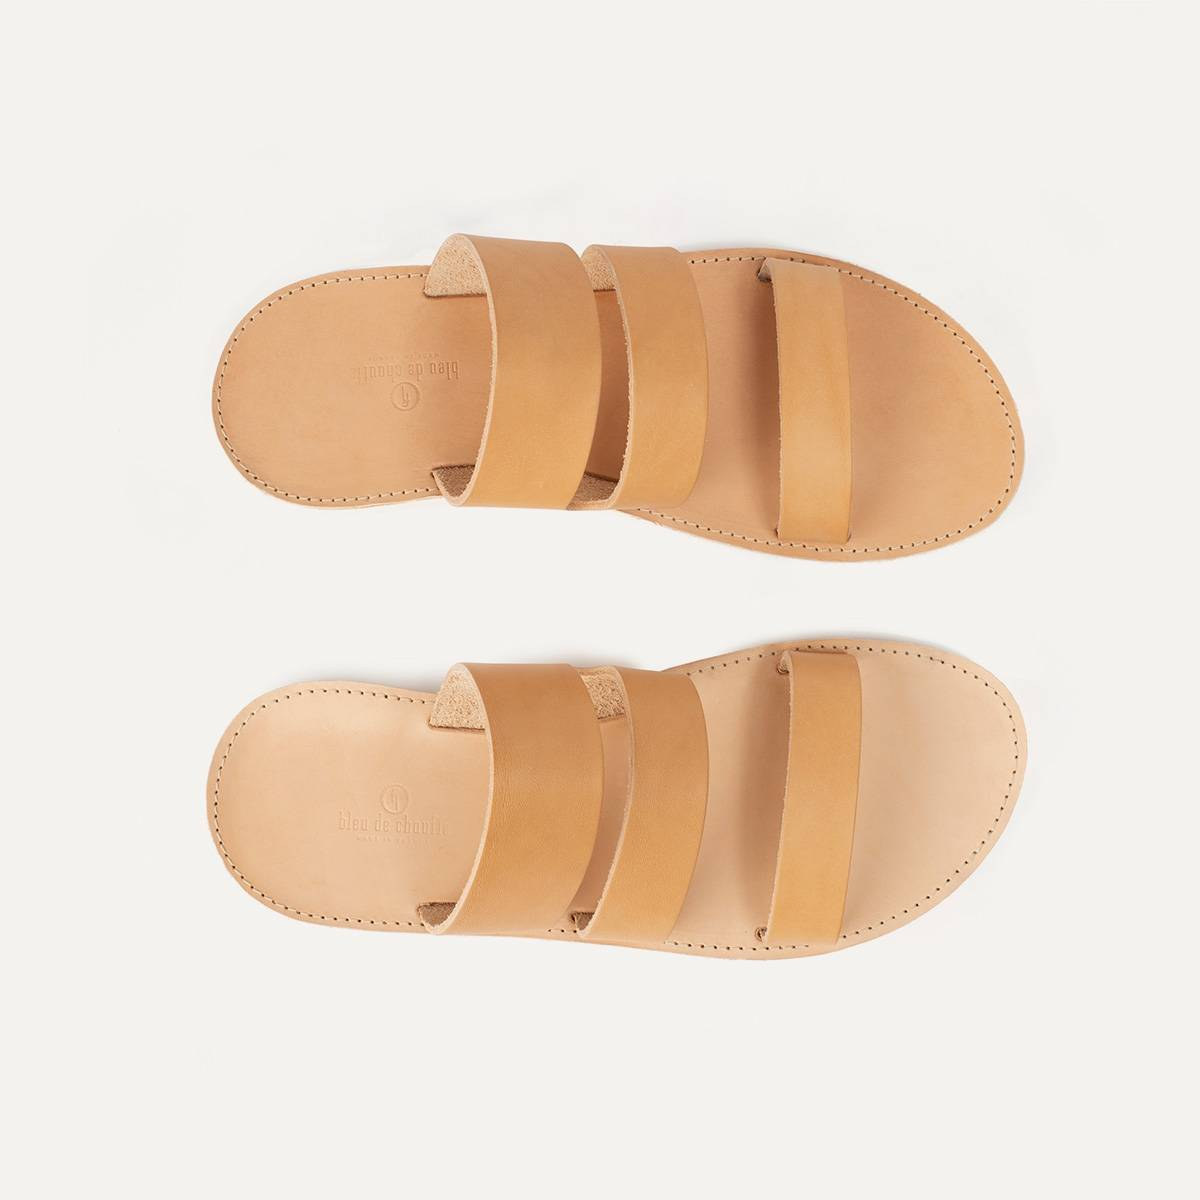 Athos leather sandals - Natural (image n°1)